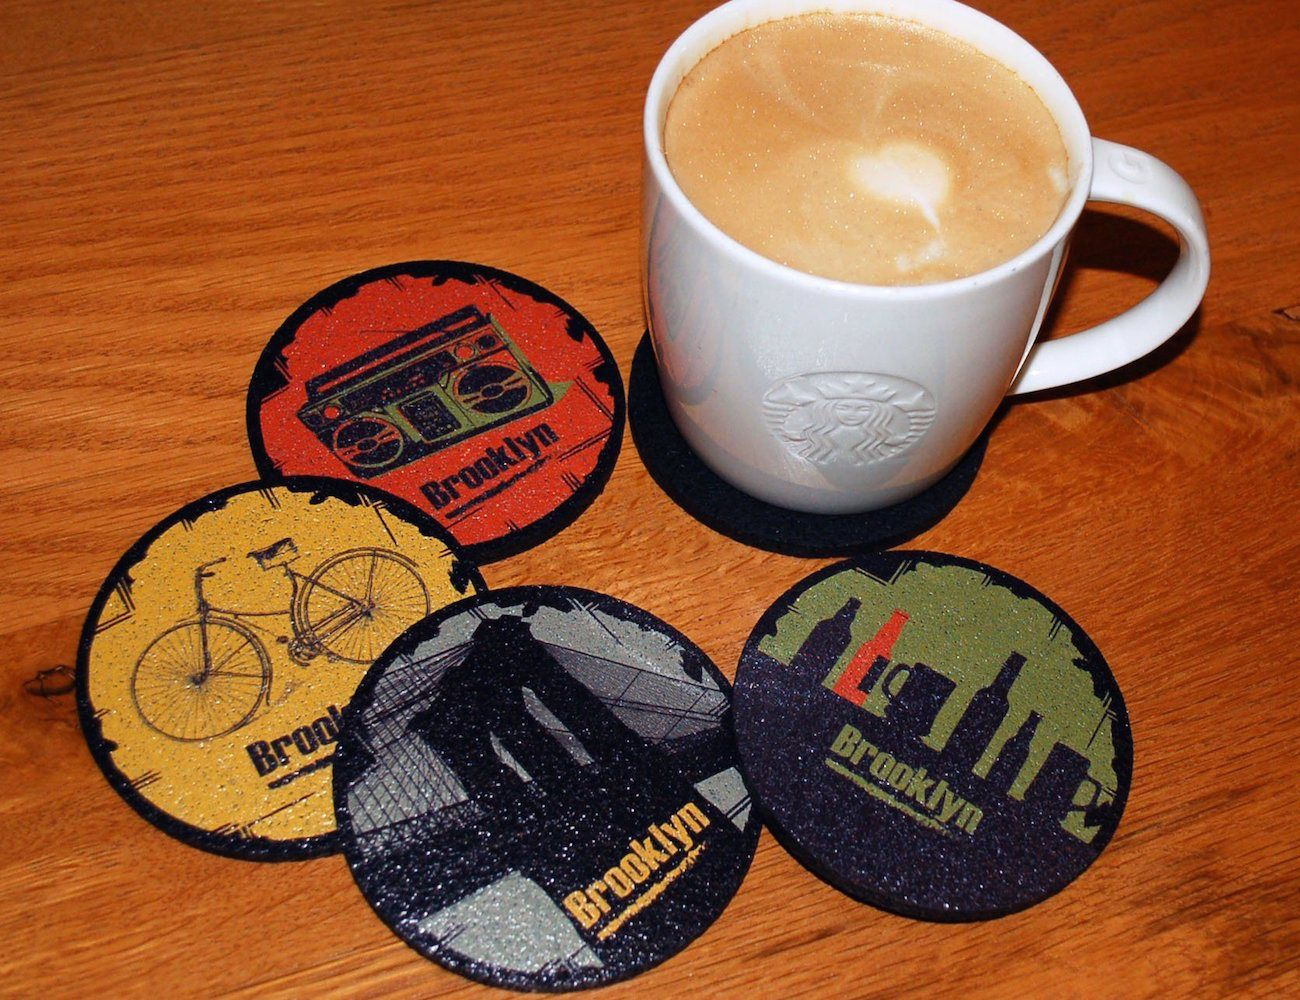 #Brooklyn Love #Coasters http://thegadgetflow.com/portfolio/brooklyn-love-coasters/?utm_content=bufferb9d94&utm_medium=pinterest&utm_source=pinterest.com&utm_campaign=buffer The lively culture of Brooklyn will add fun to your #teatimes!